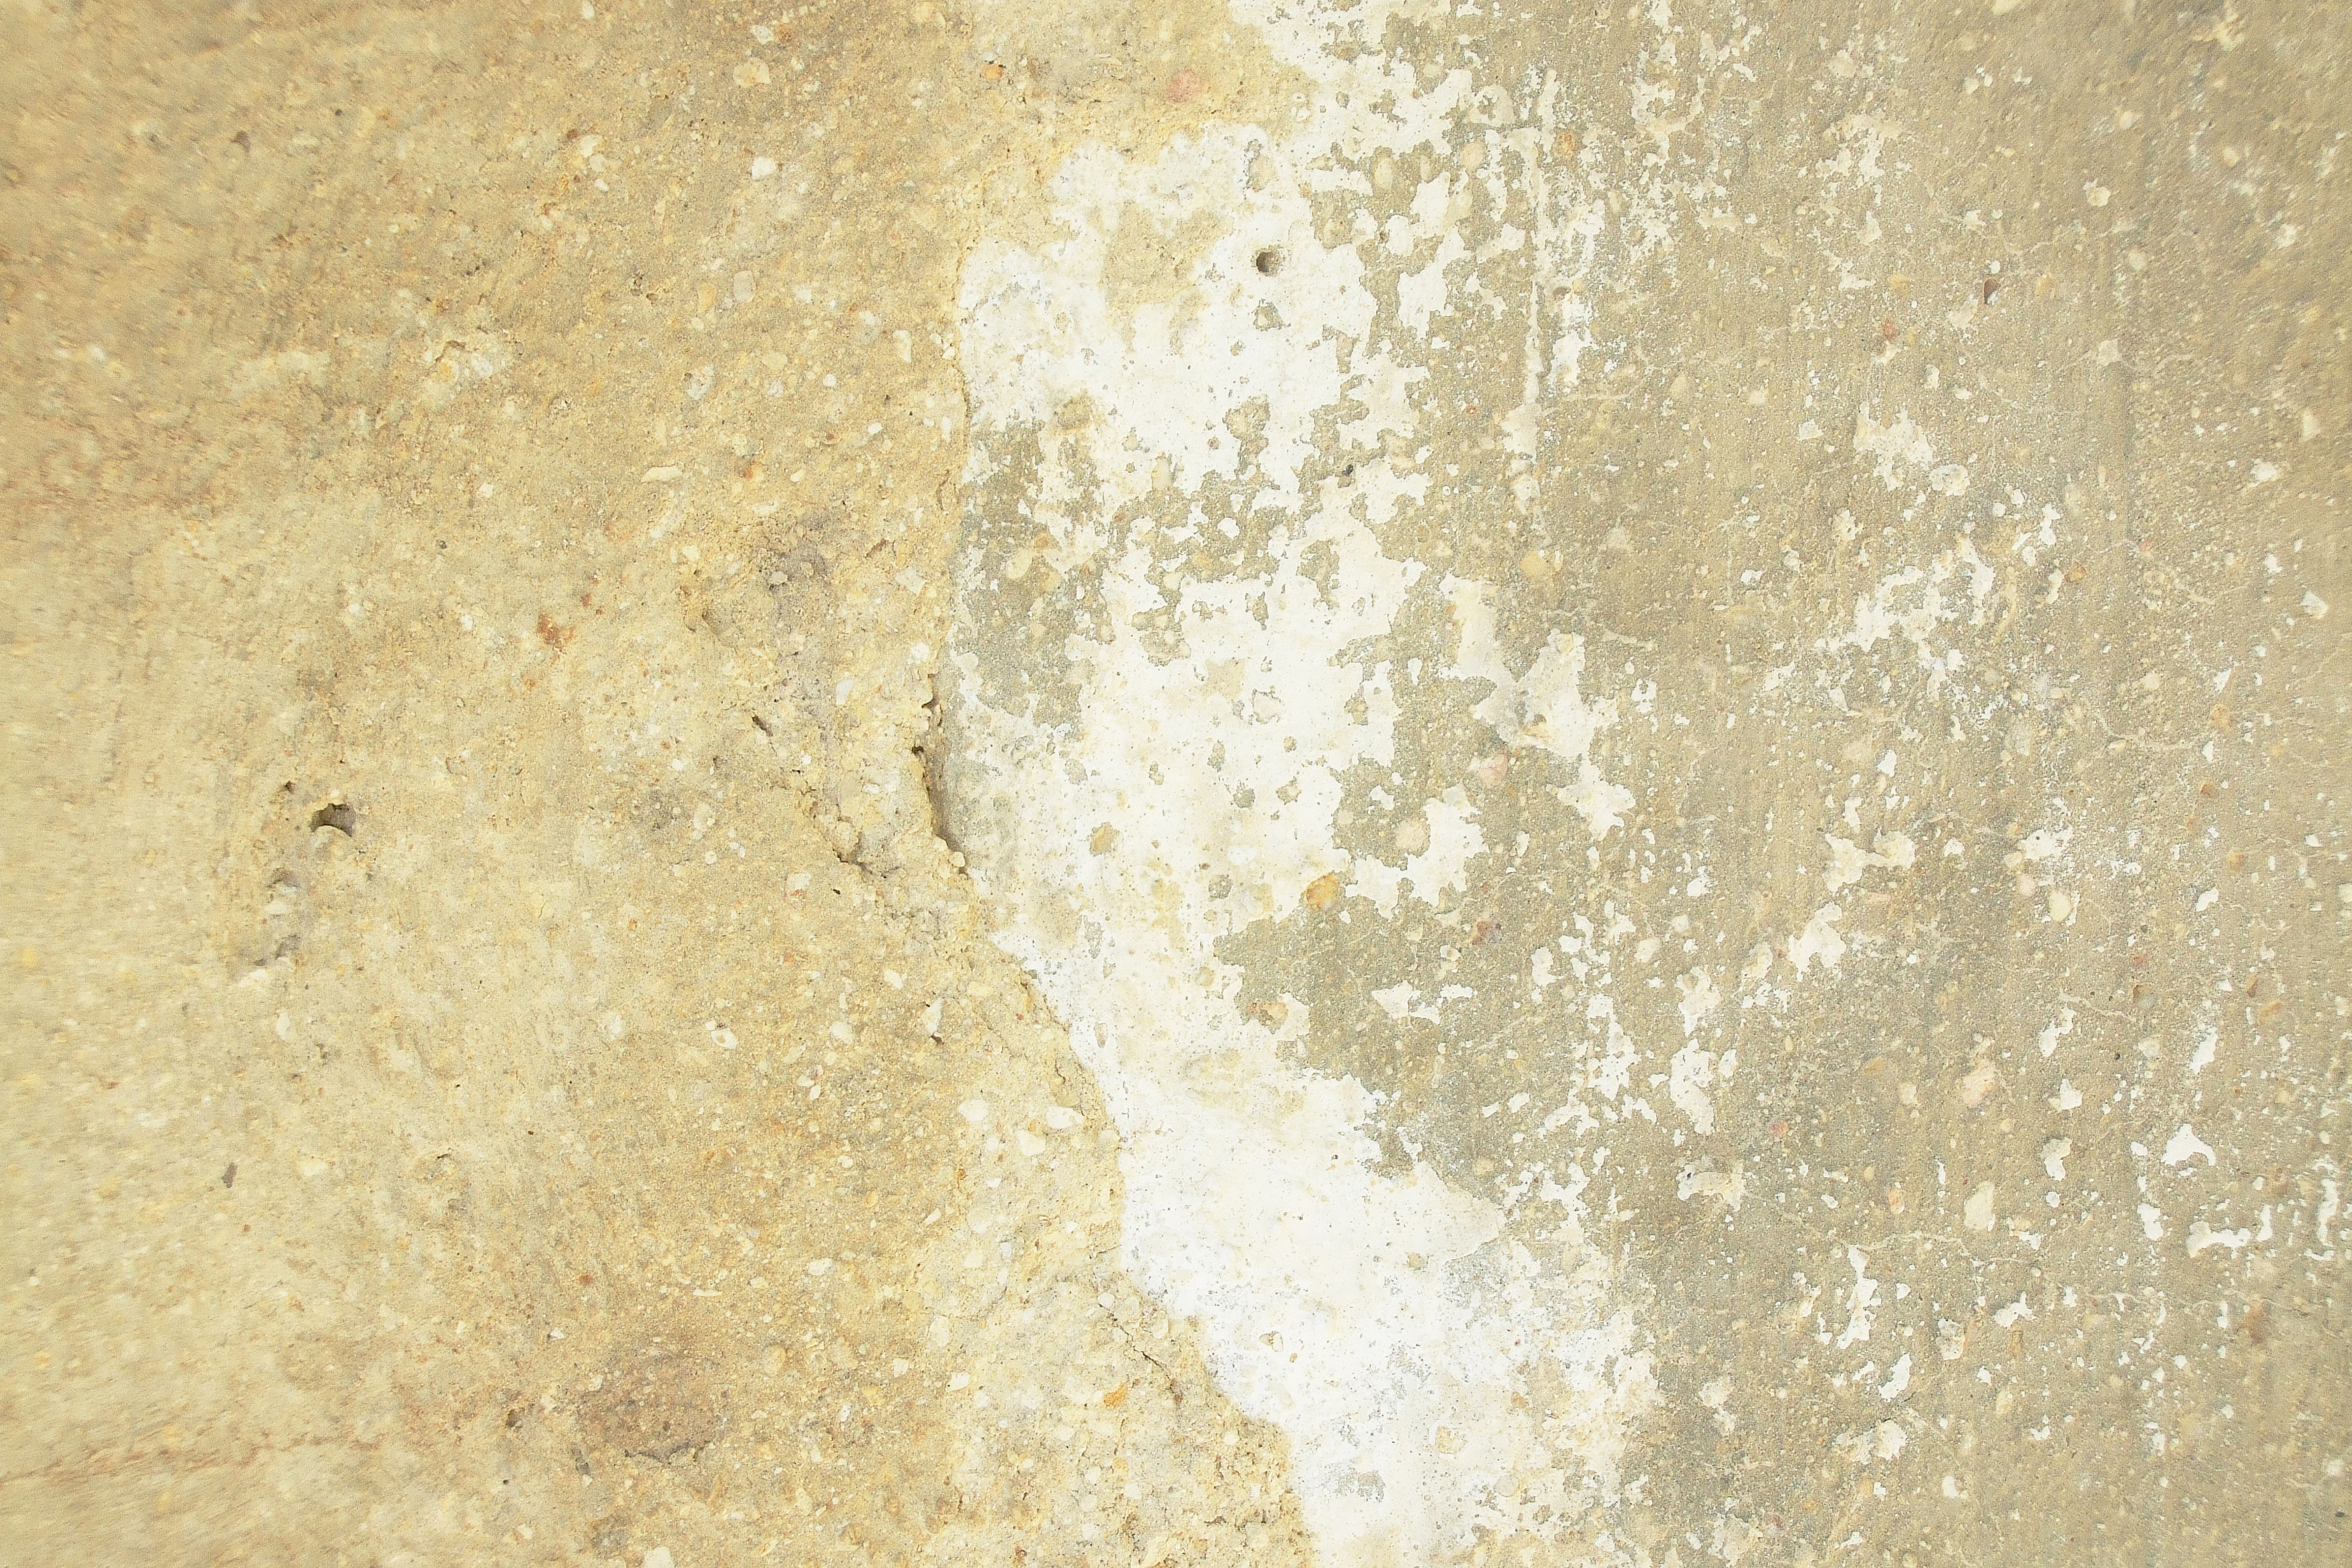 Free High Quality Grunge Wall Textures - Creatives Wall